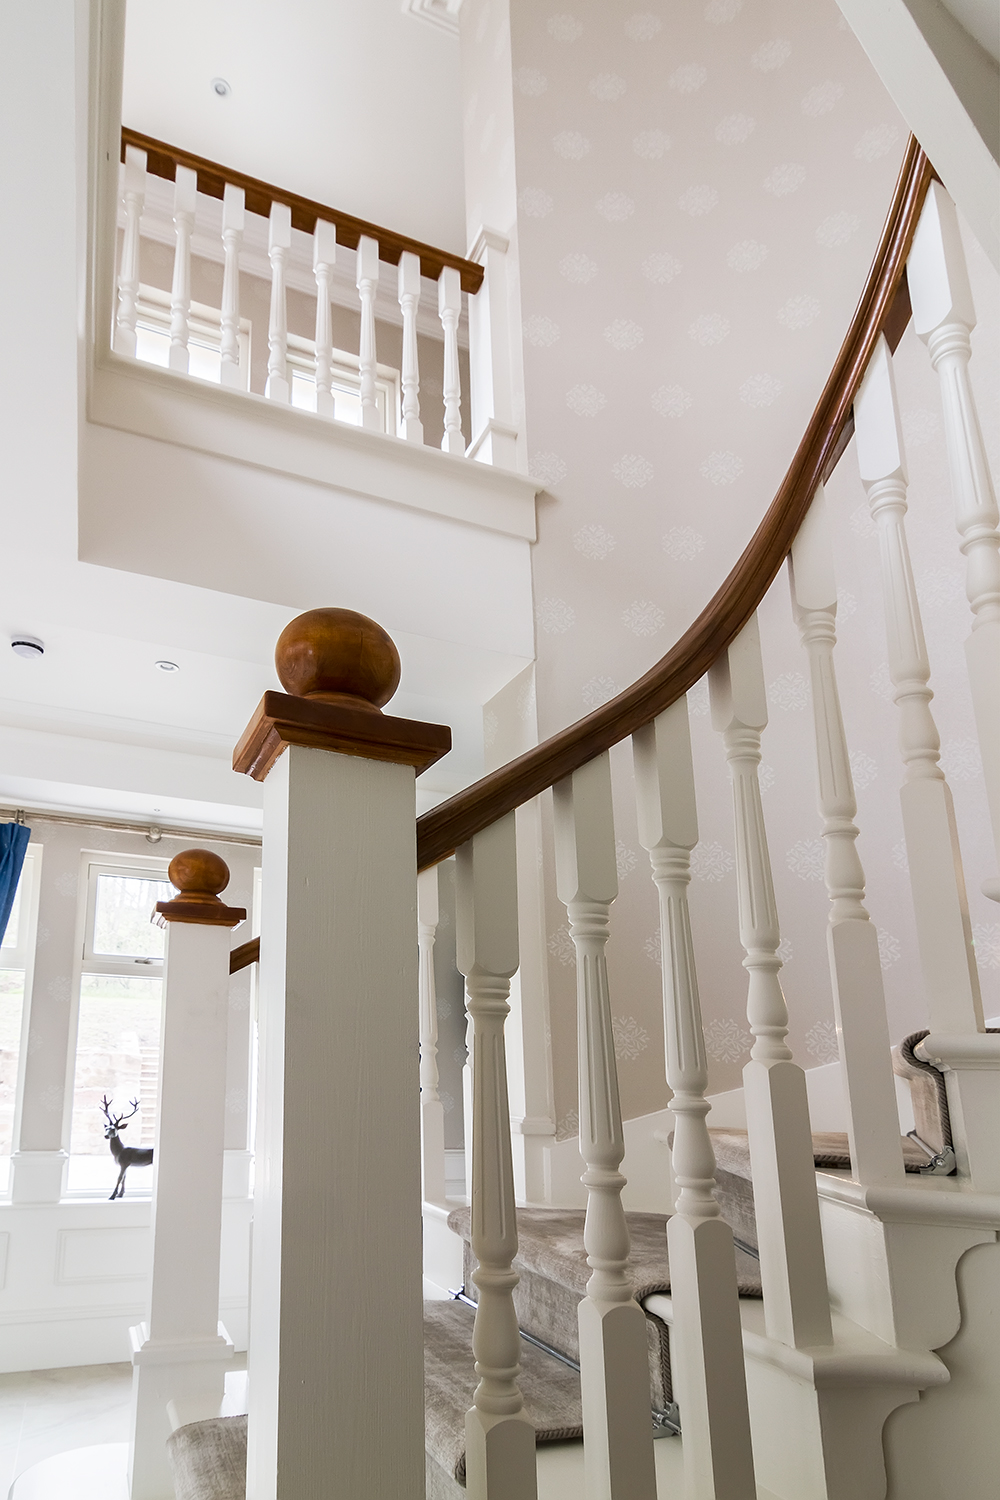 www.stockwell-ltd.co.uk   Bespoke curved cut-stringer staircase with white oak lacquered curved handrail and newel caps. This stair is highly detailed with stringer capes, curved scotia beading and double curtail steps.